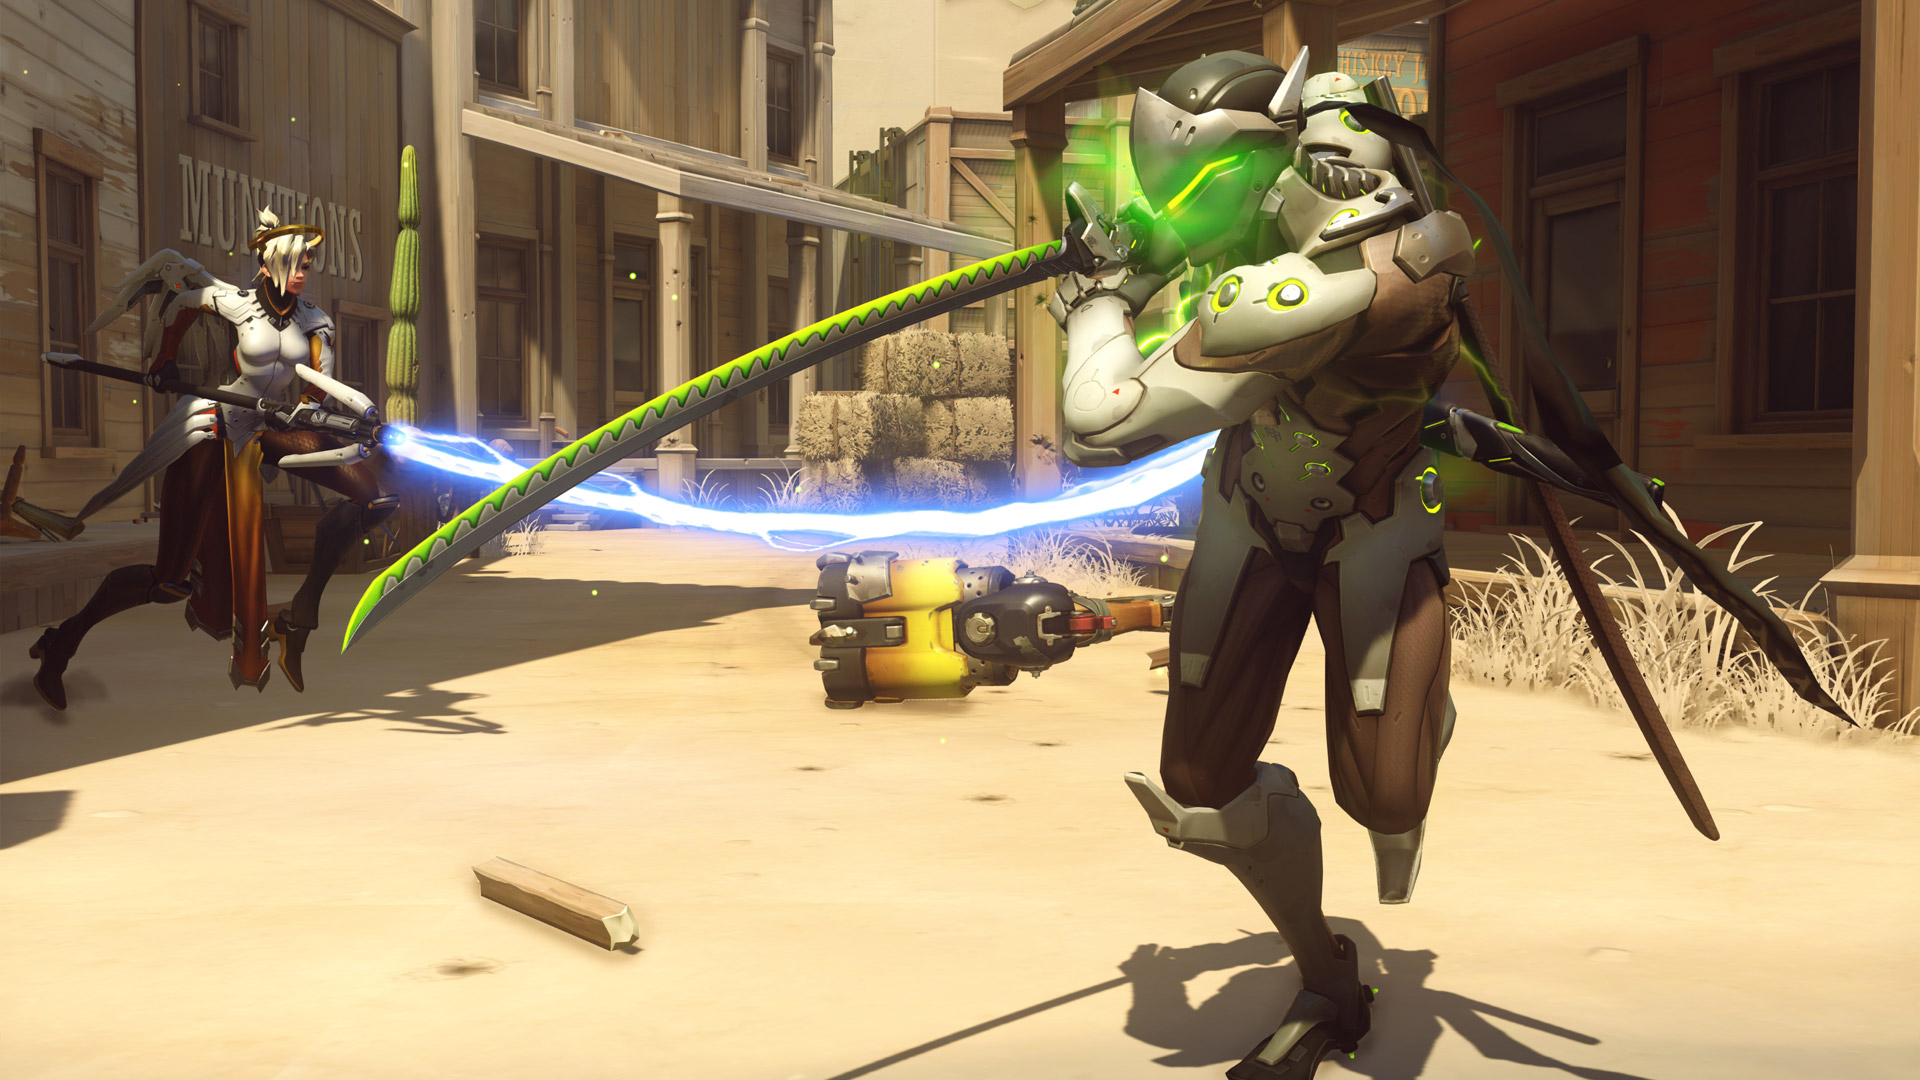 Why isn't Overwatch free-to-play, and what are Blizzard's plans for DLC?